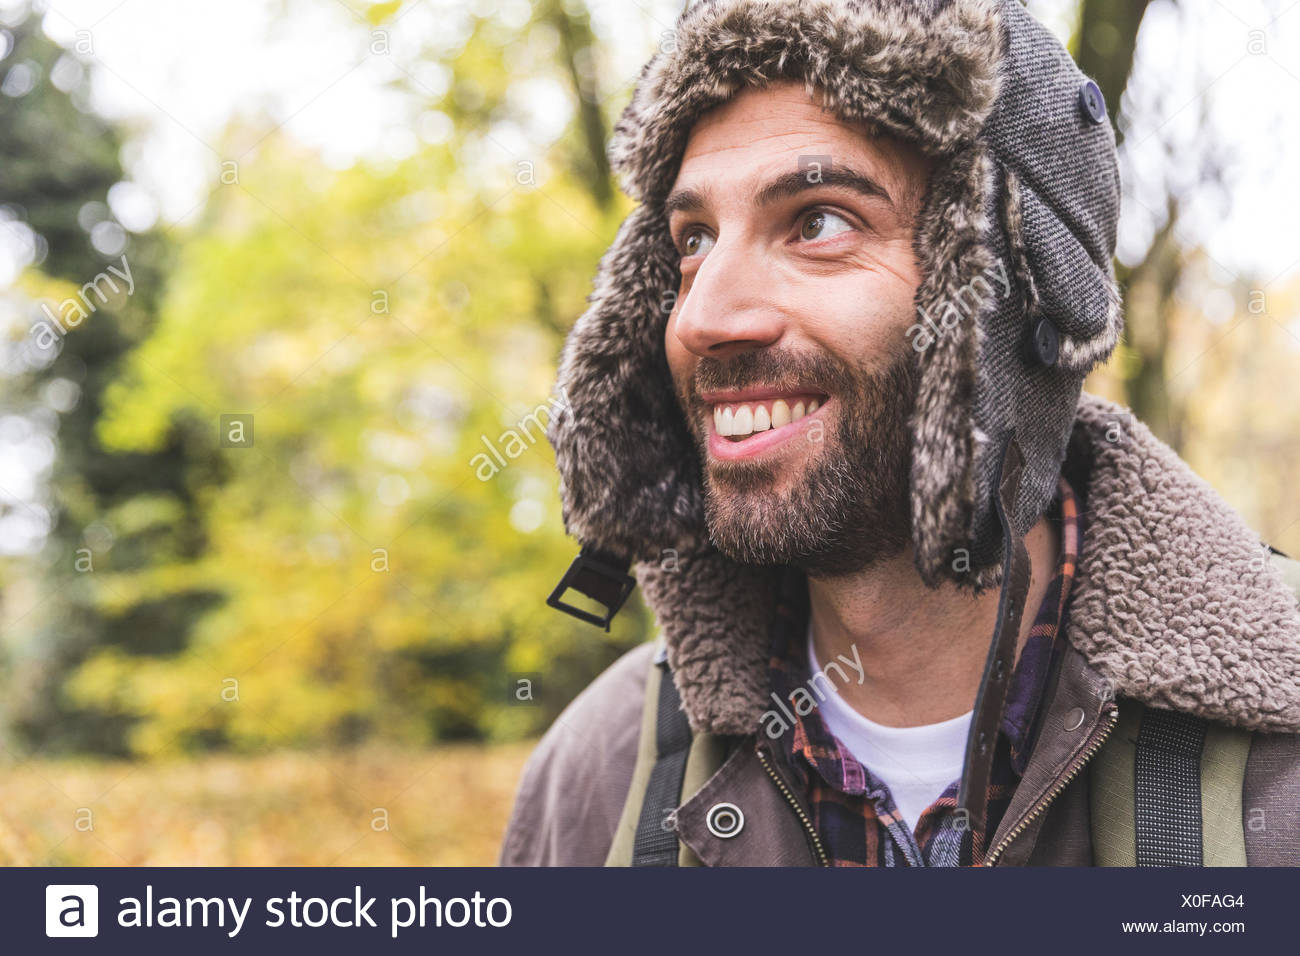 Mid Adult Man Wearing Trapper Hat Stock Photos   Mid Adult Man ... 750108d91a56